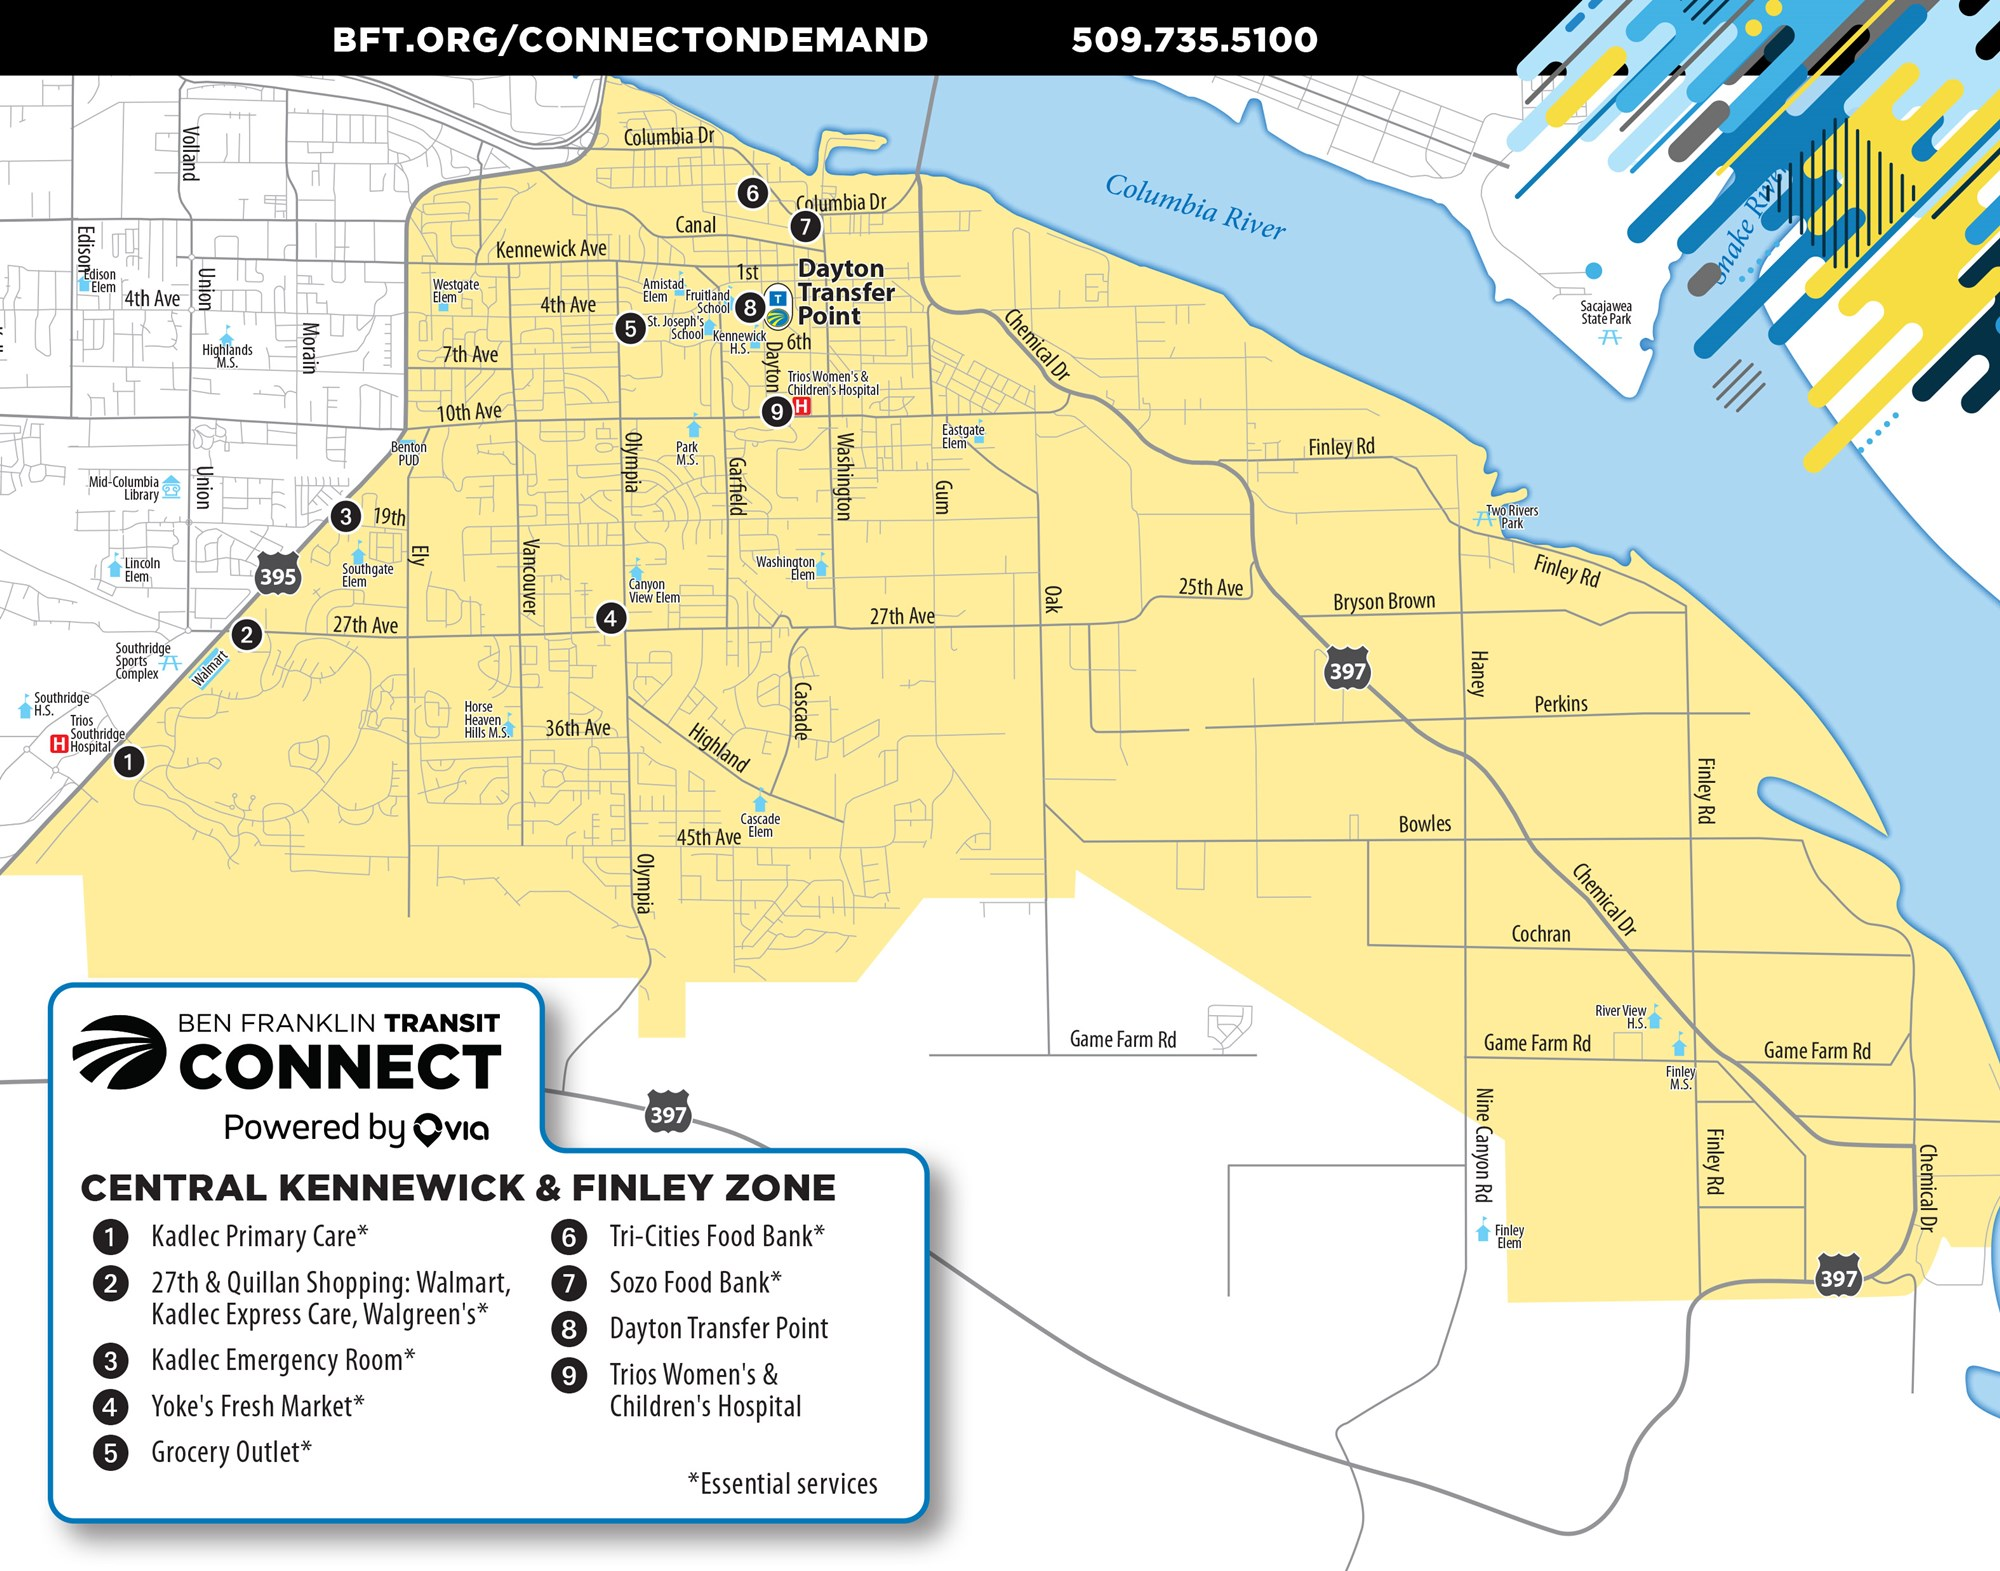 BFT_CONNECT_Central_Kennewick